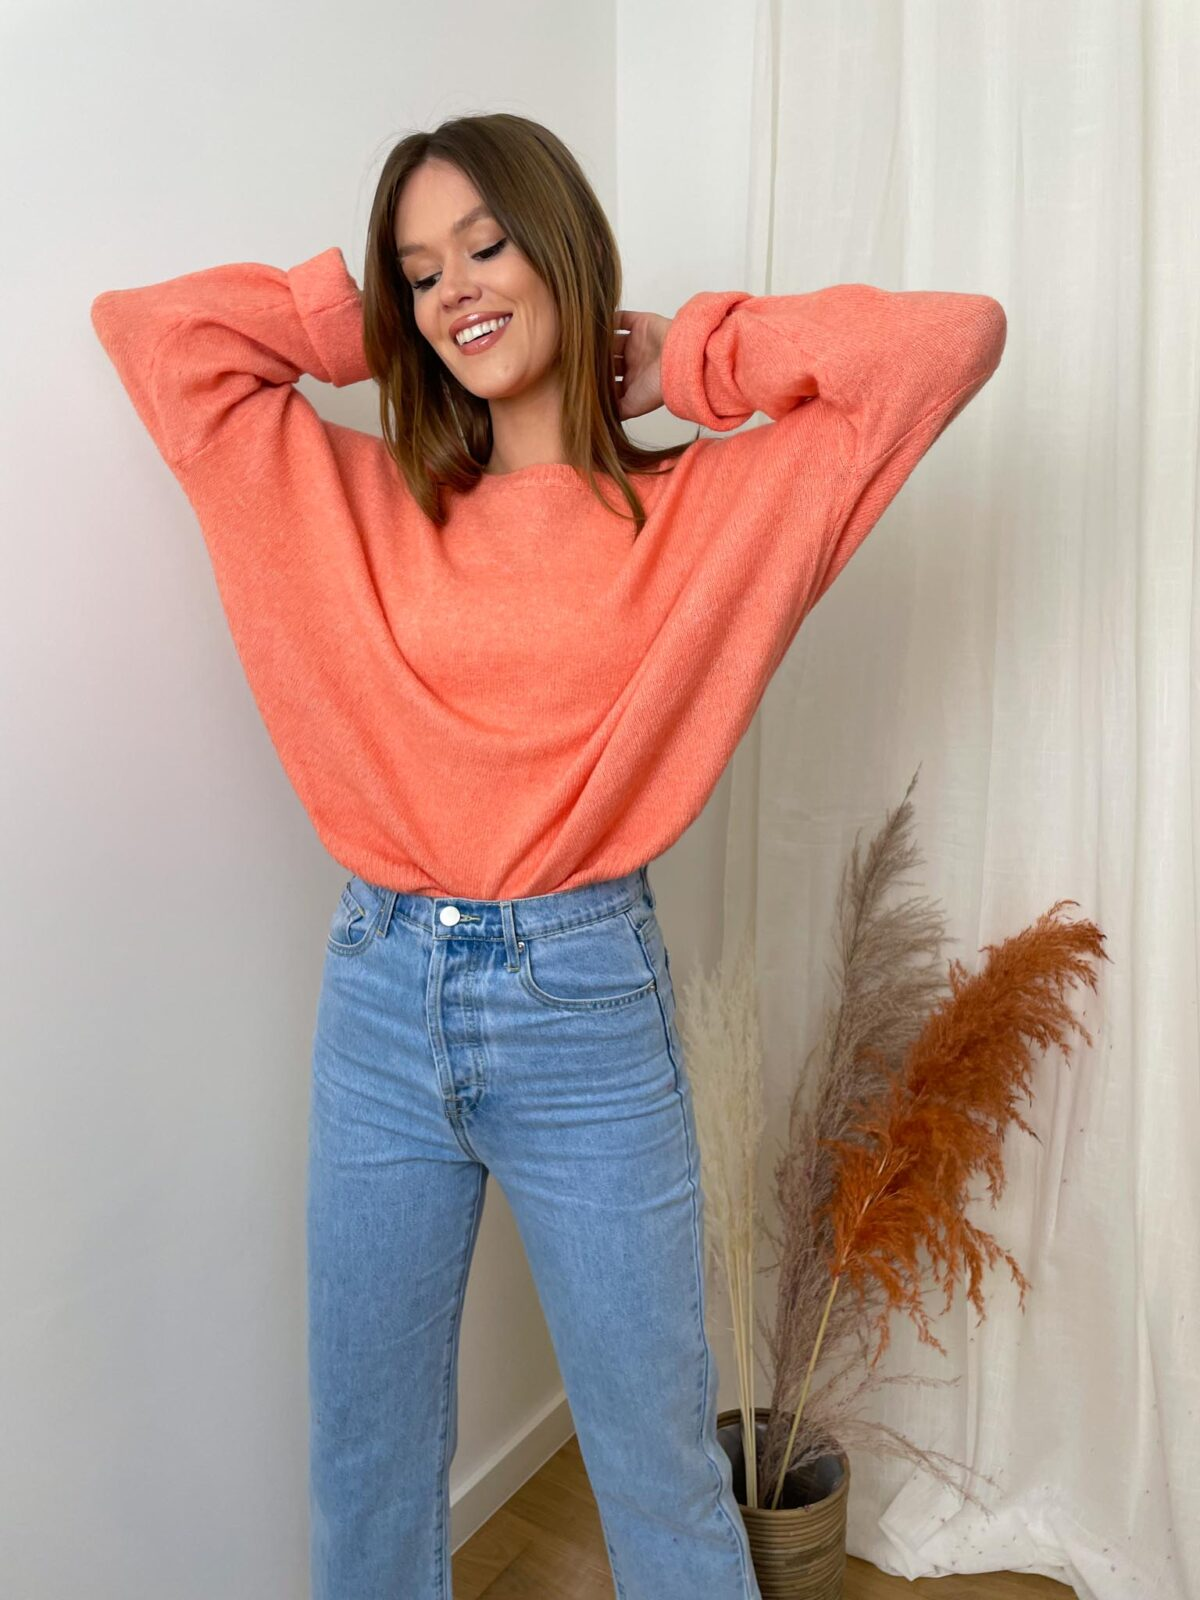 woman with an orange knitted sweater and denim pants